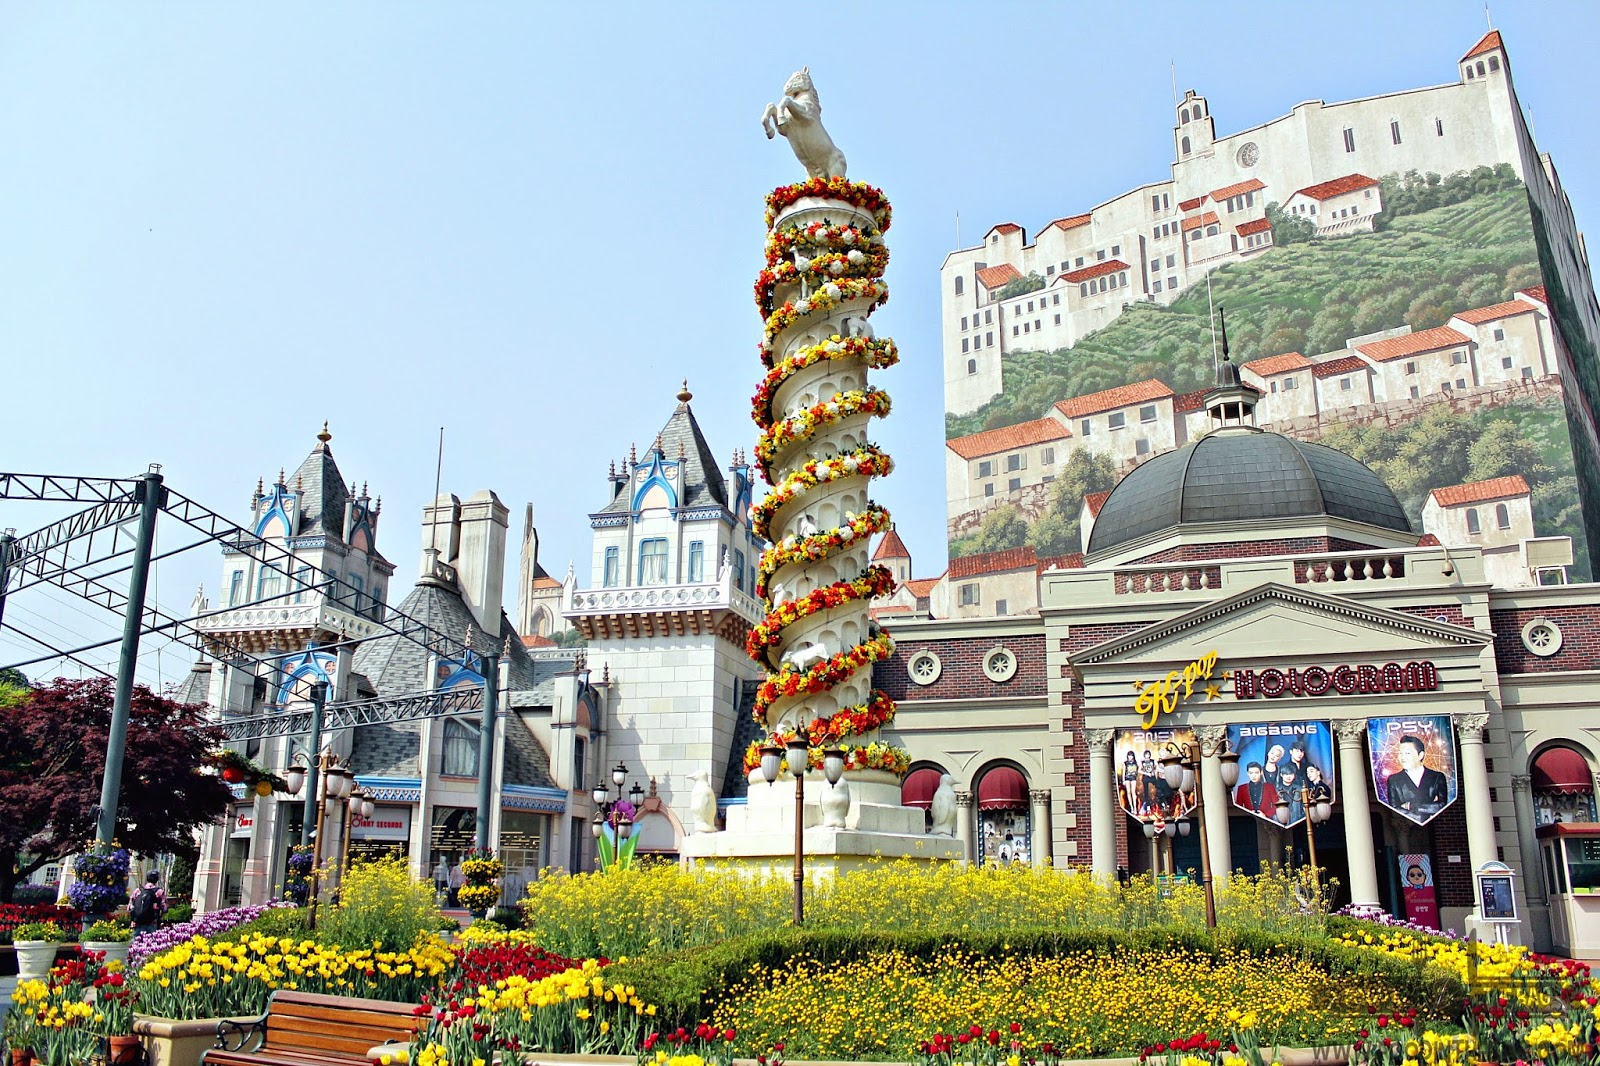 everland theme park in korea photo essay food in the bag